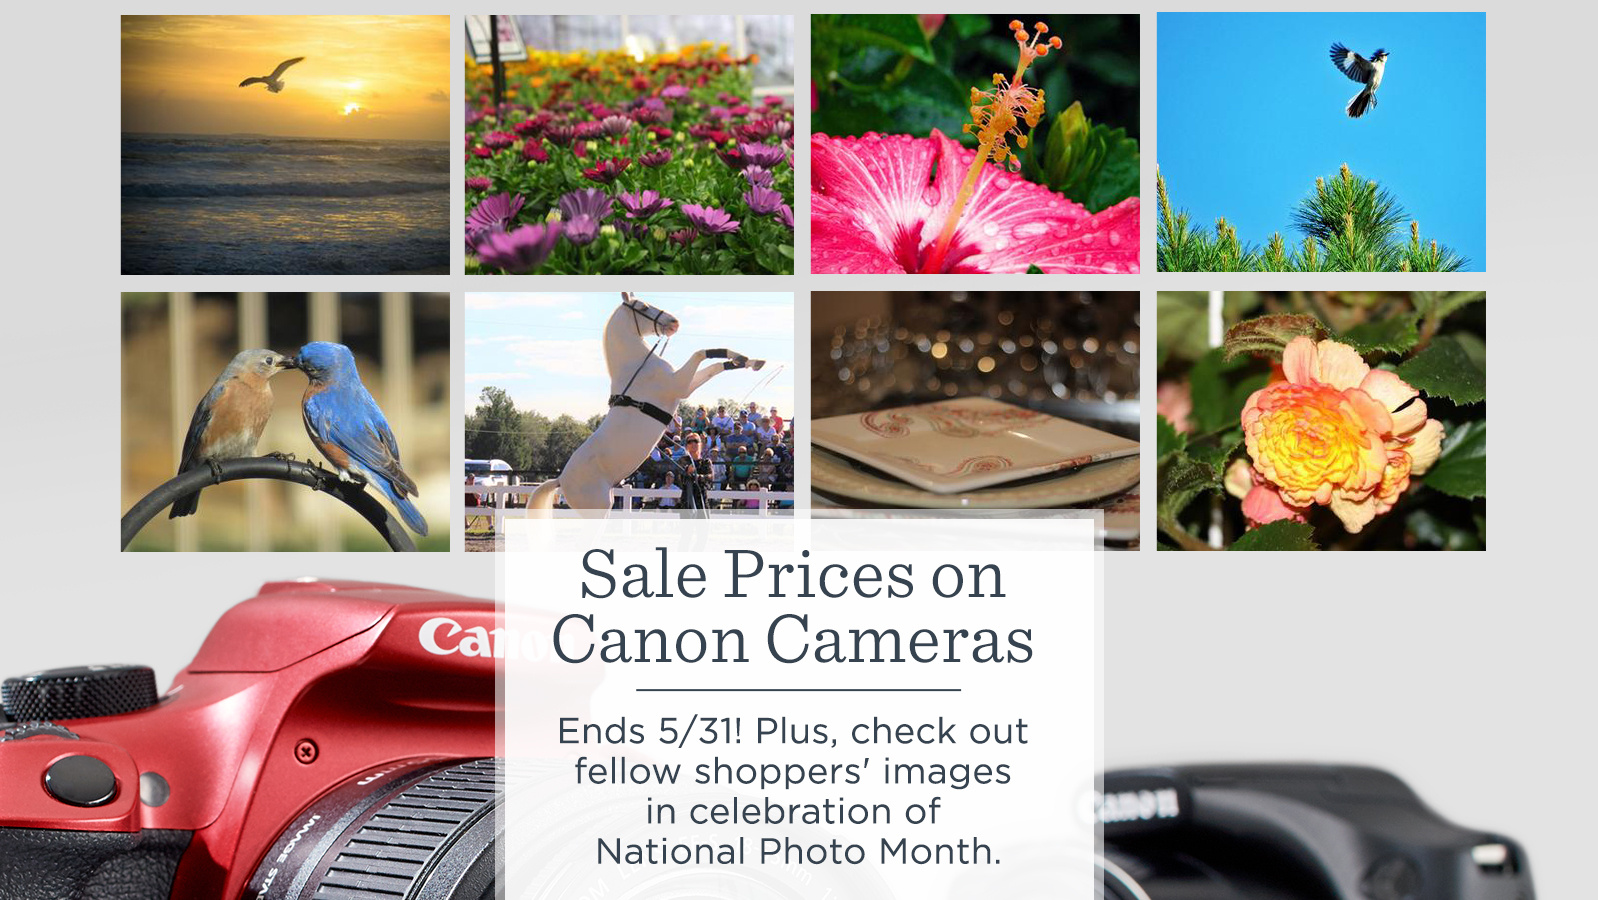 Sale Prices on Canon Cameras.  — Ends 5/31! Plus, check out fellow shoppers' images in celebration of National Photo Month.